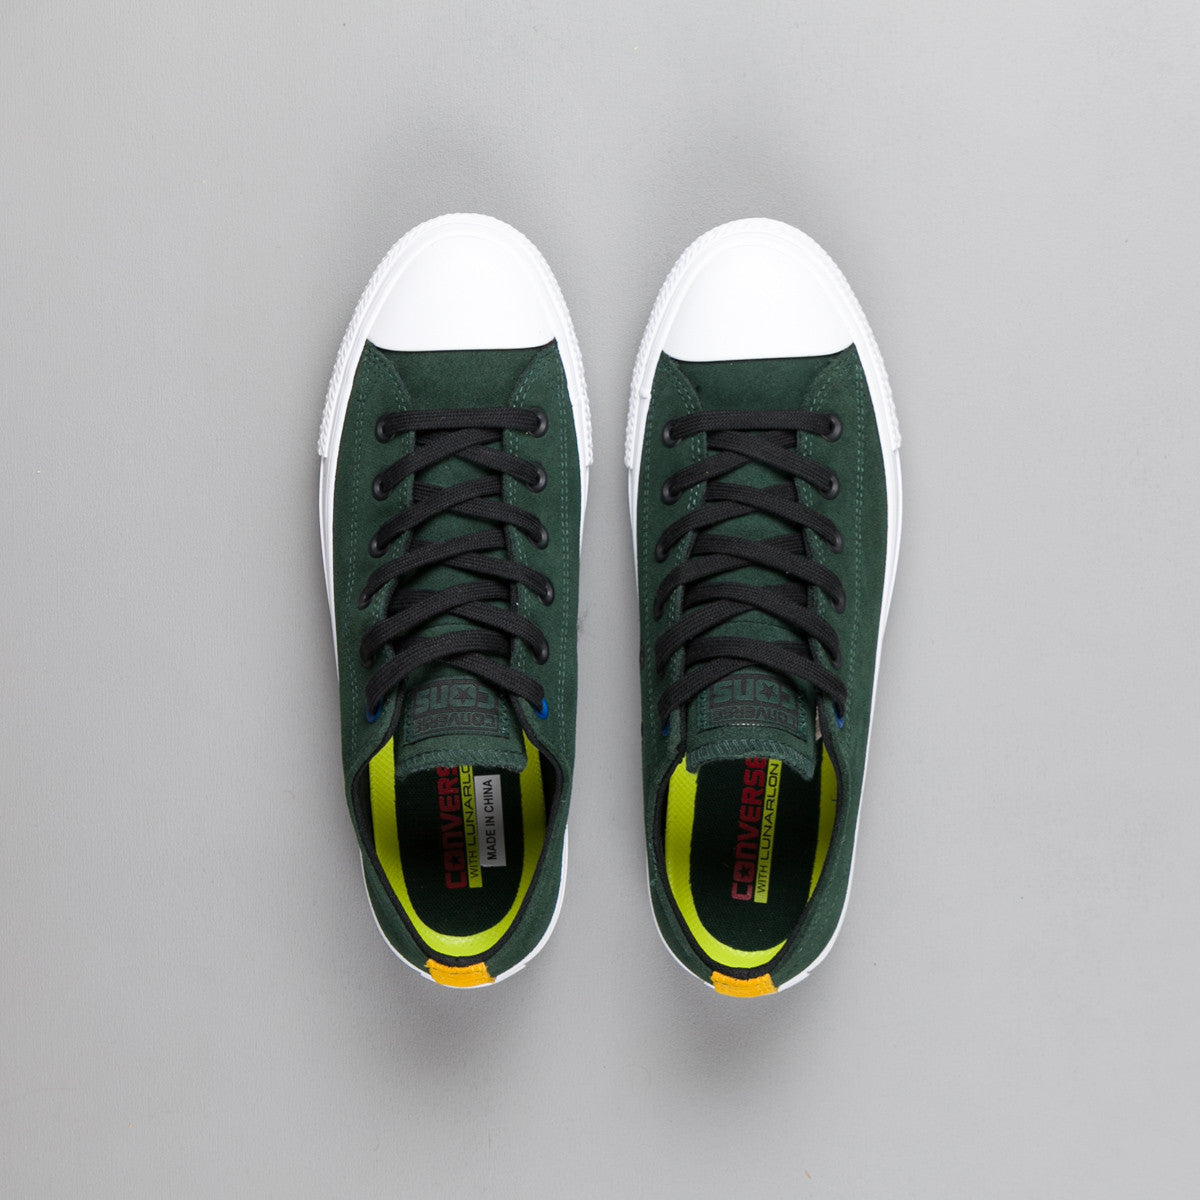 Converse CTAS Pro Suede OX Shoes - Deep Emerald / Black